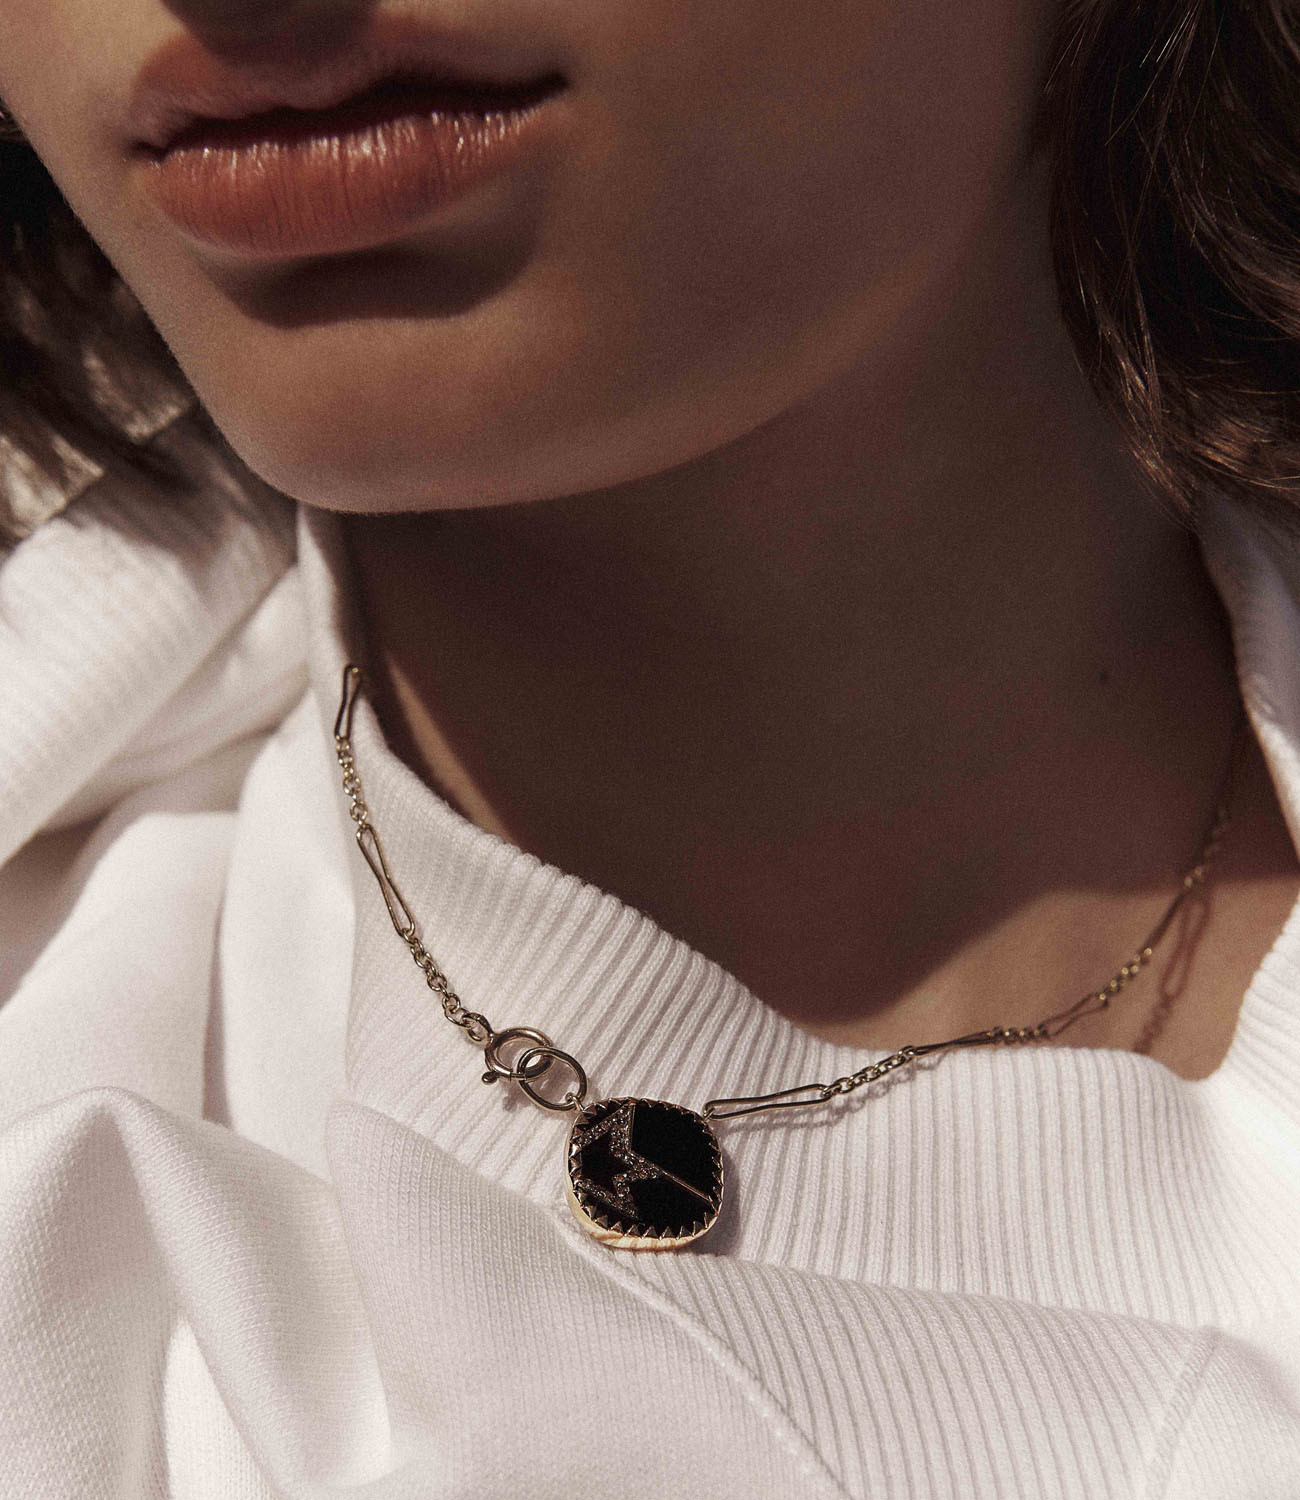 Pascale Monvoisin Necklace VARDA N°2 BLACK DIAMOND